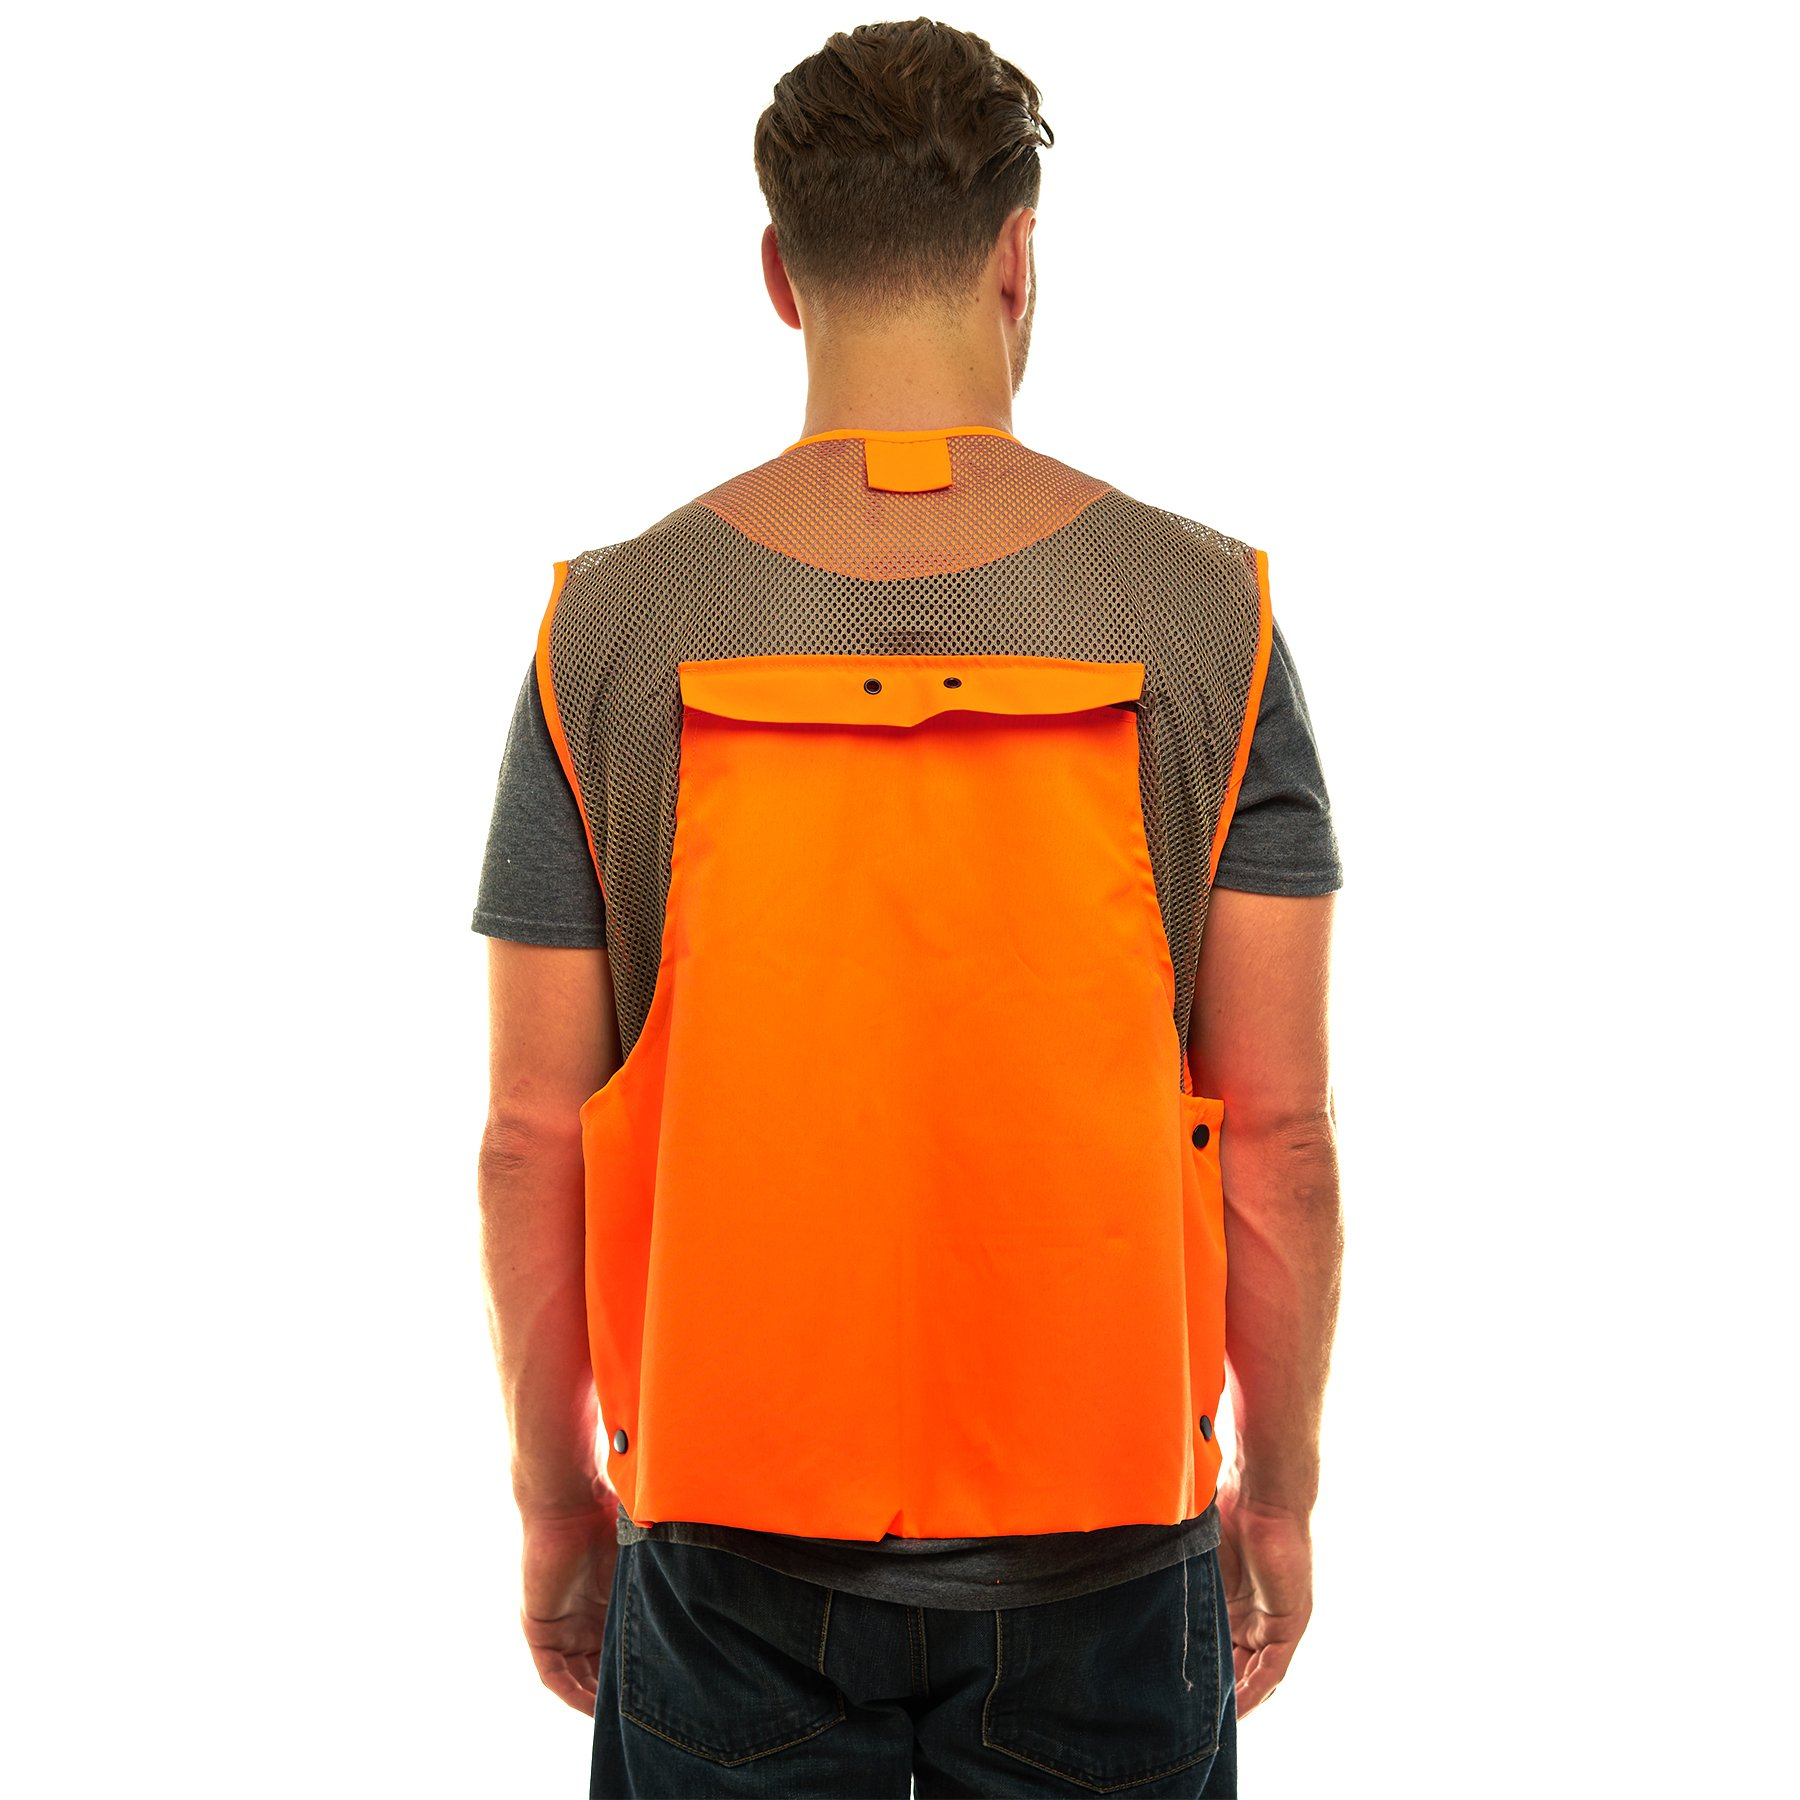 TrailCrest Mens Blaze Orange Safety Deluxe Front Loader Vest, 3X by TrailCrest (Image #2)